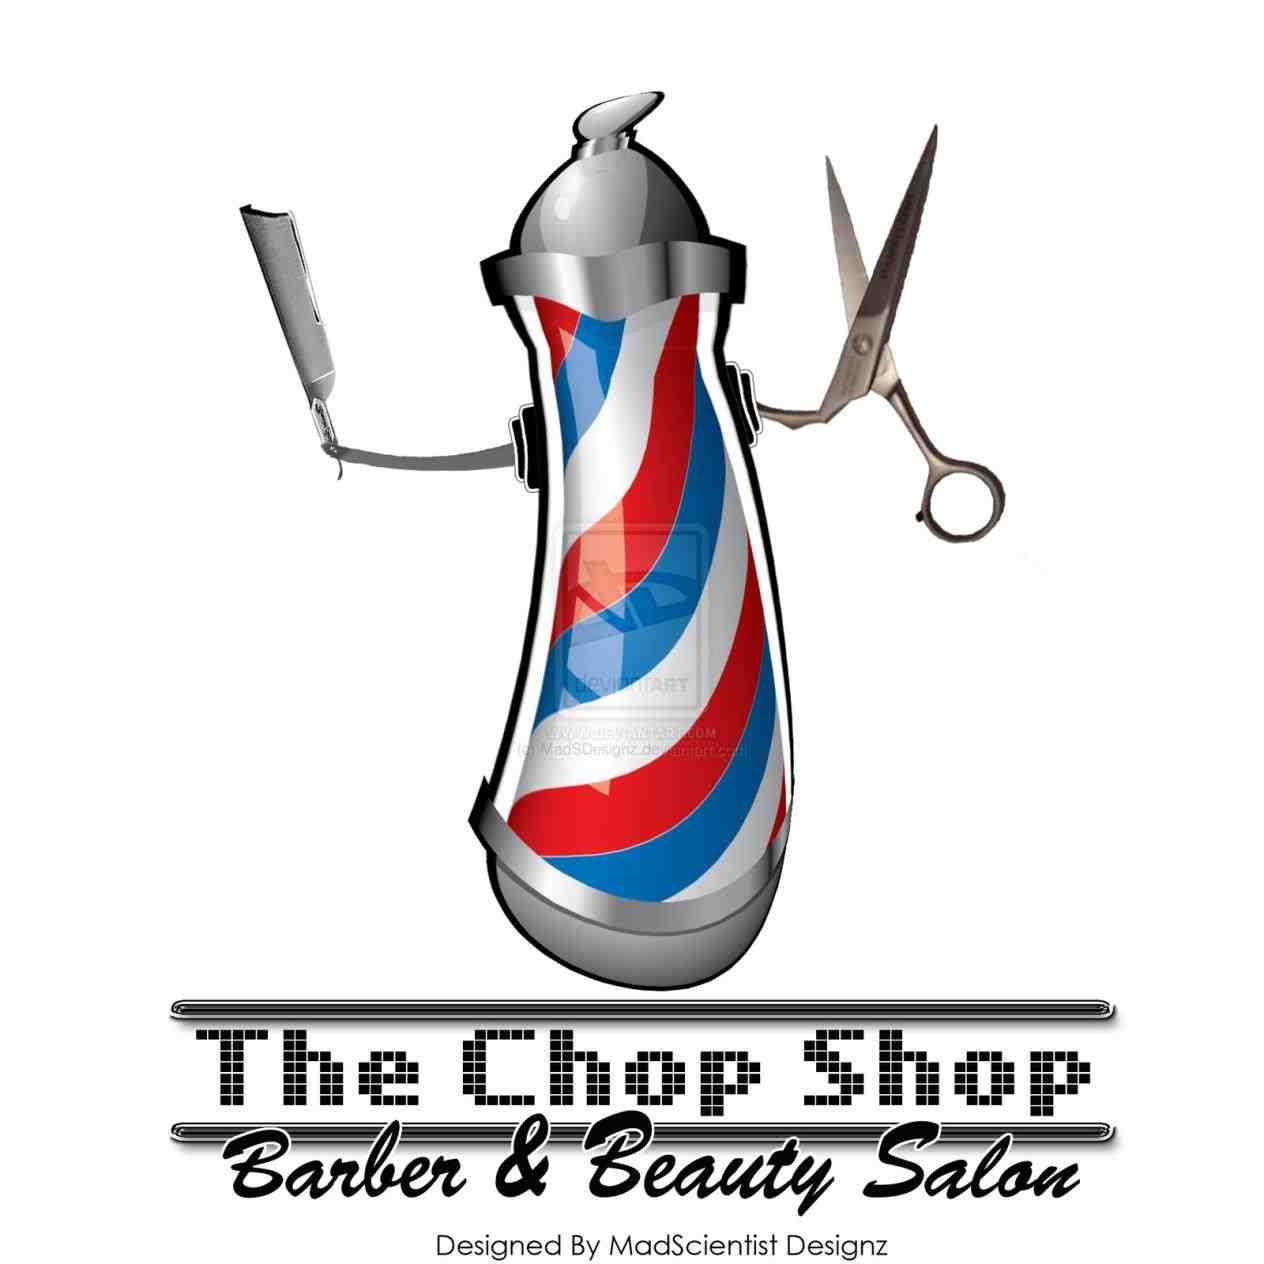 1264x1264 Image Barber Shop Pole Images Of Barber Pole Clipart Shop Clip Art